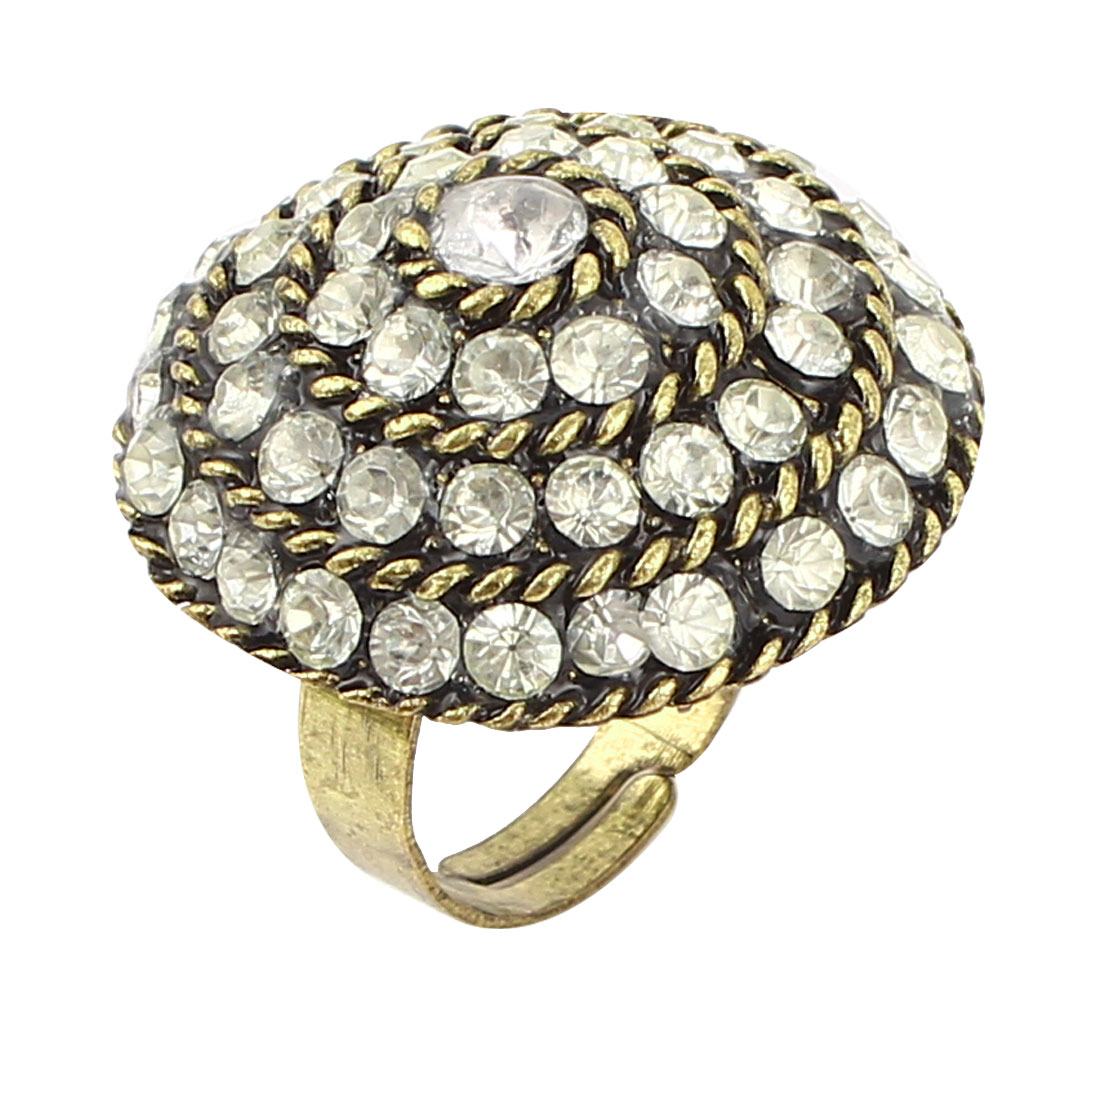 US 6 1/4 Mushroom Shape Rhinestone Detailing Bronze Tone Metal Finger Ring for Lady